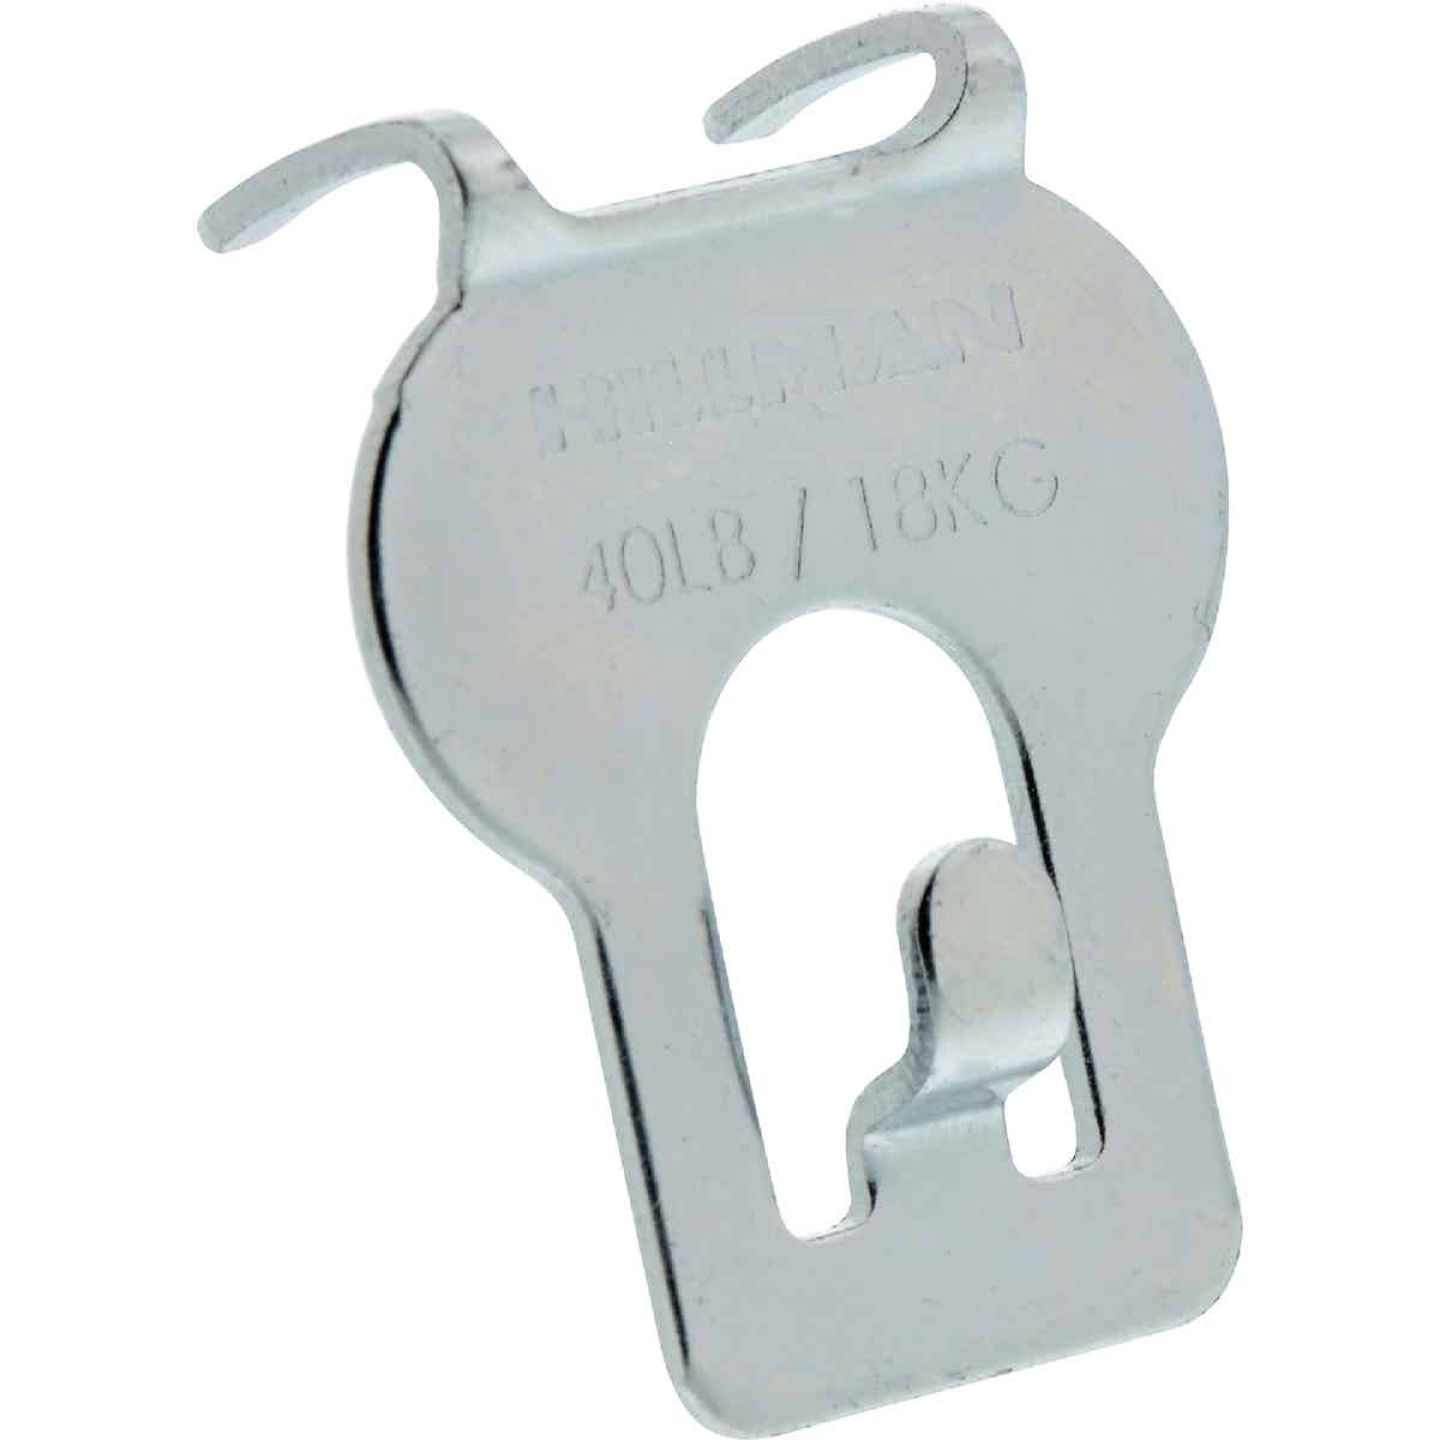 Hillman High and Mighty 40 Lb. Capacity Picture Hanger Image 1